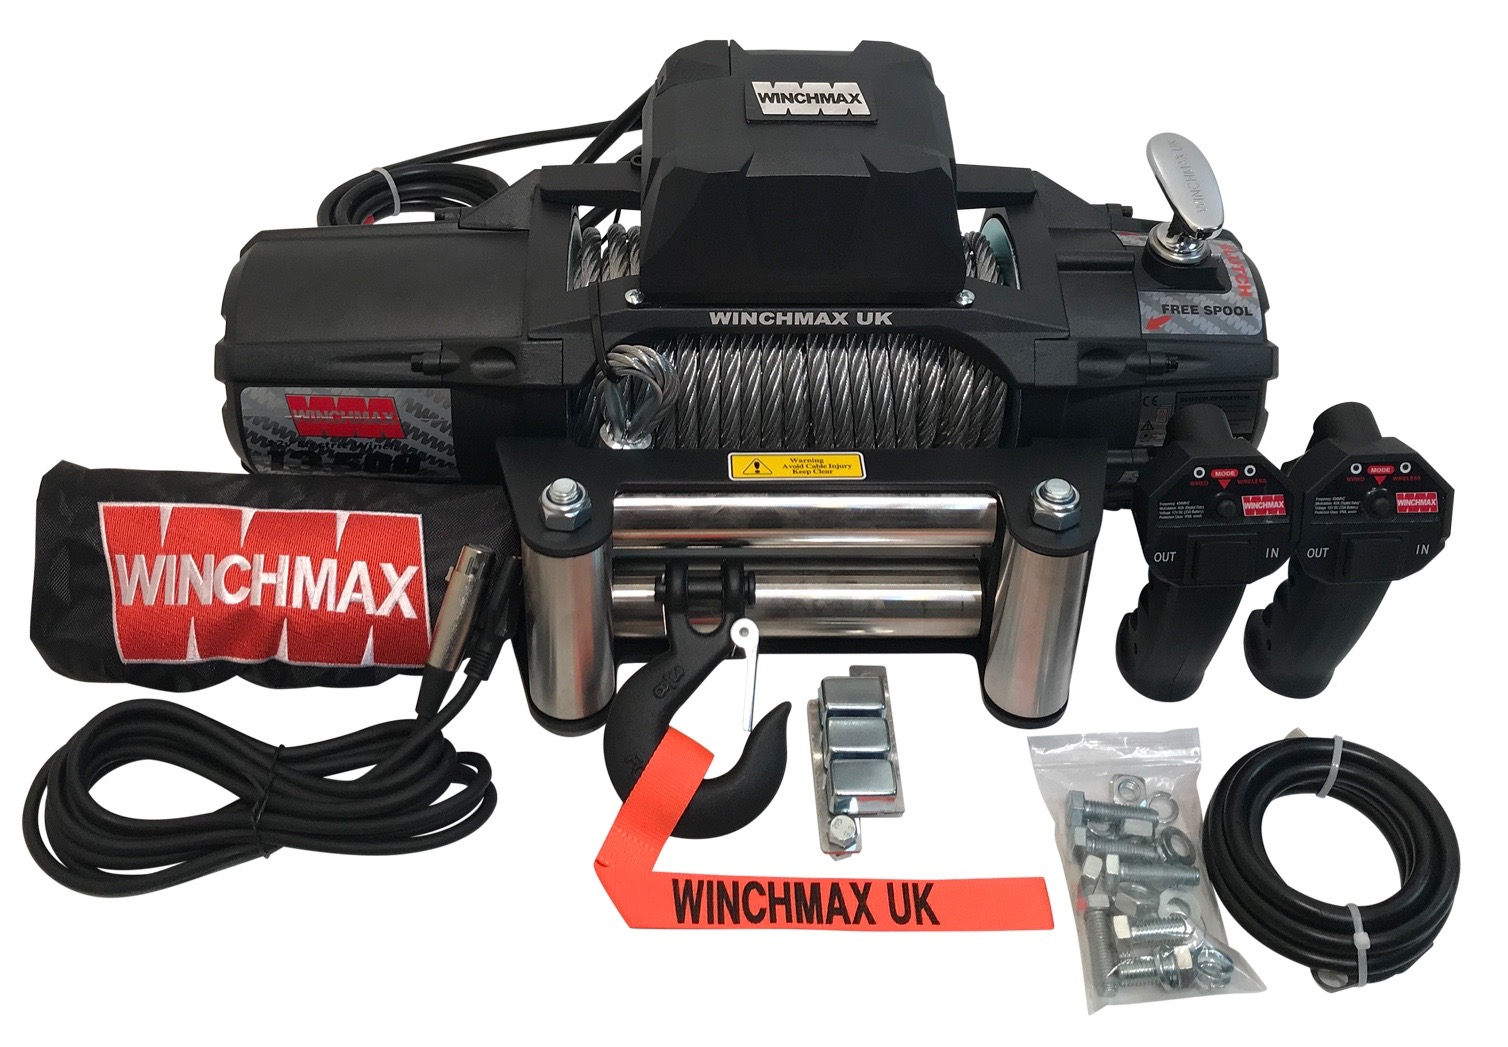 WINCHMAX MILITARY SPEC 13500LB 12V ELECTRIC WINCH WITH WIRELESS REMOTES